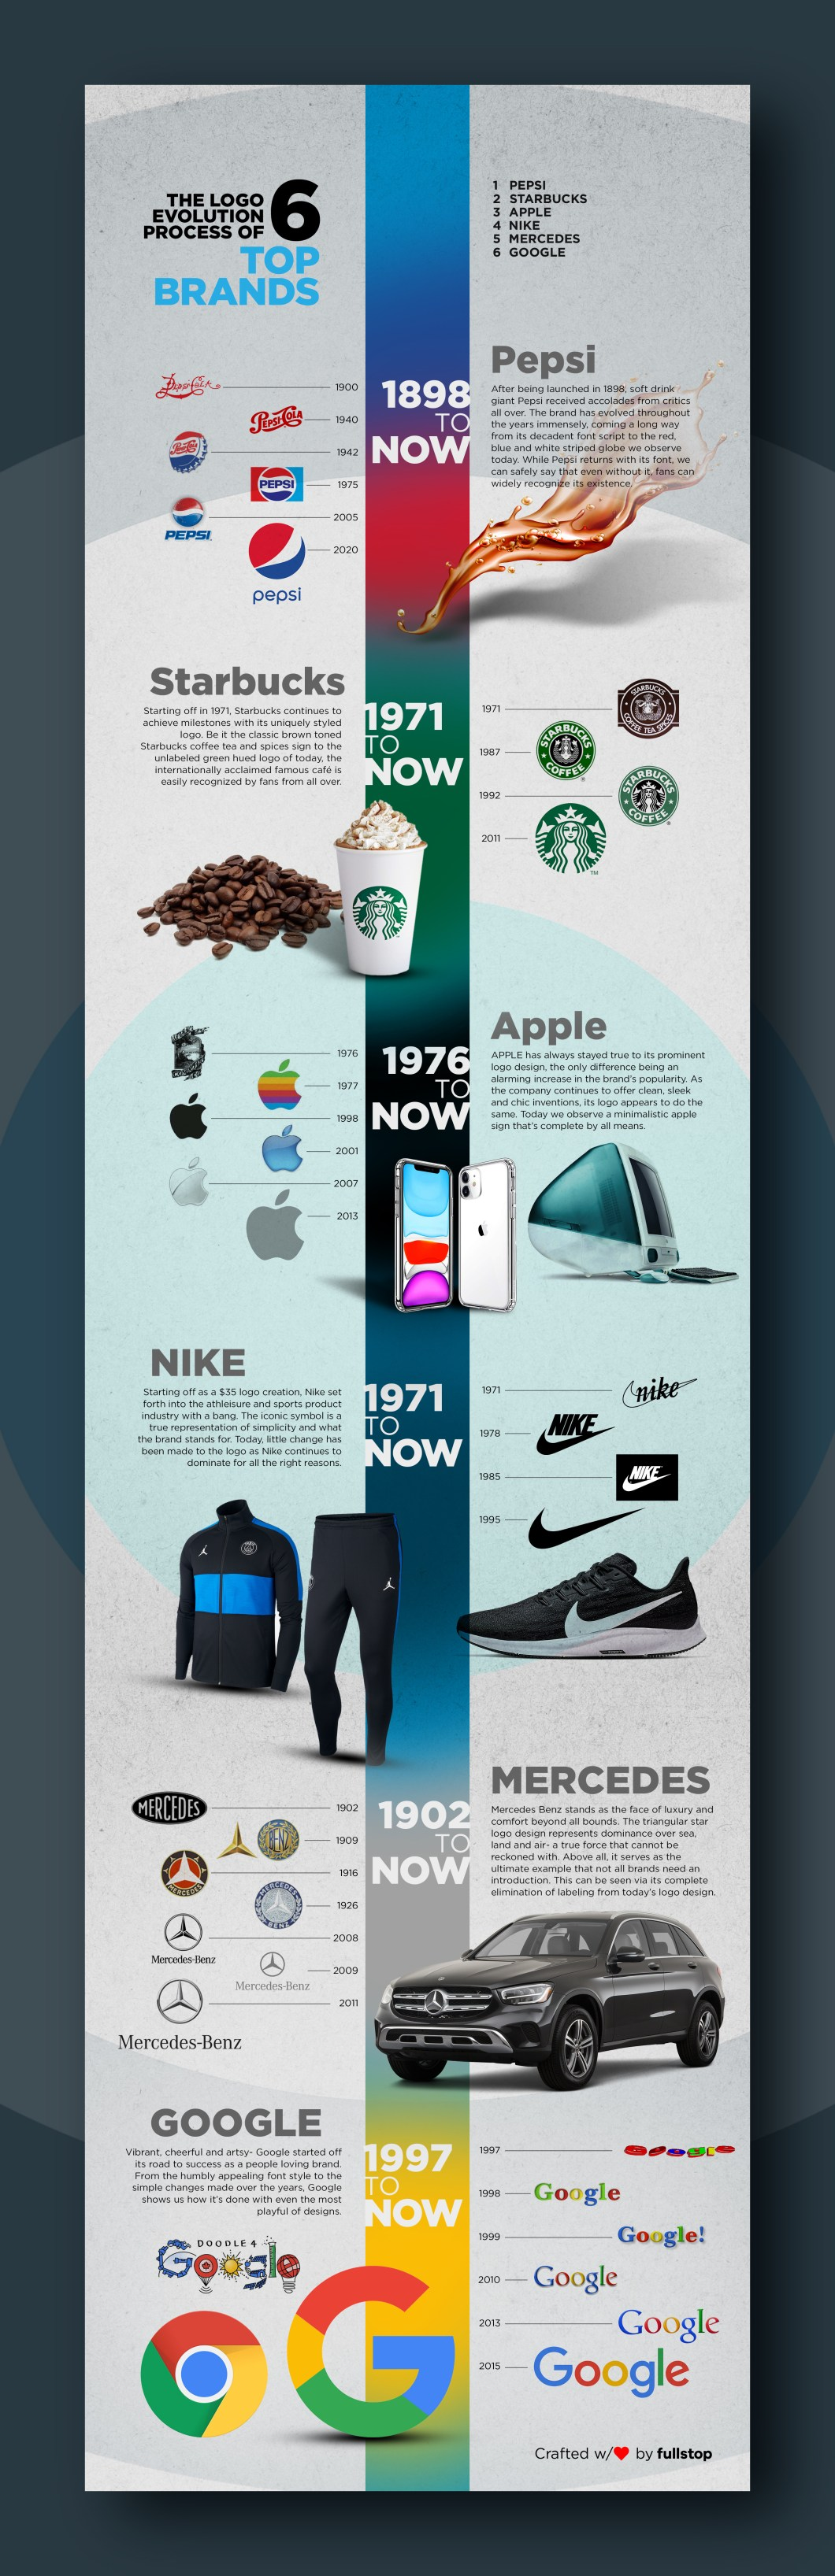 Logo Evolution: The Top 9 Famous Brands over the Time